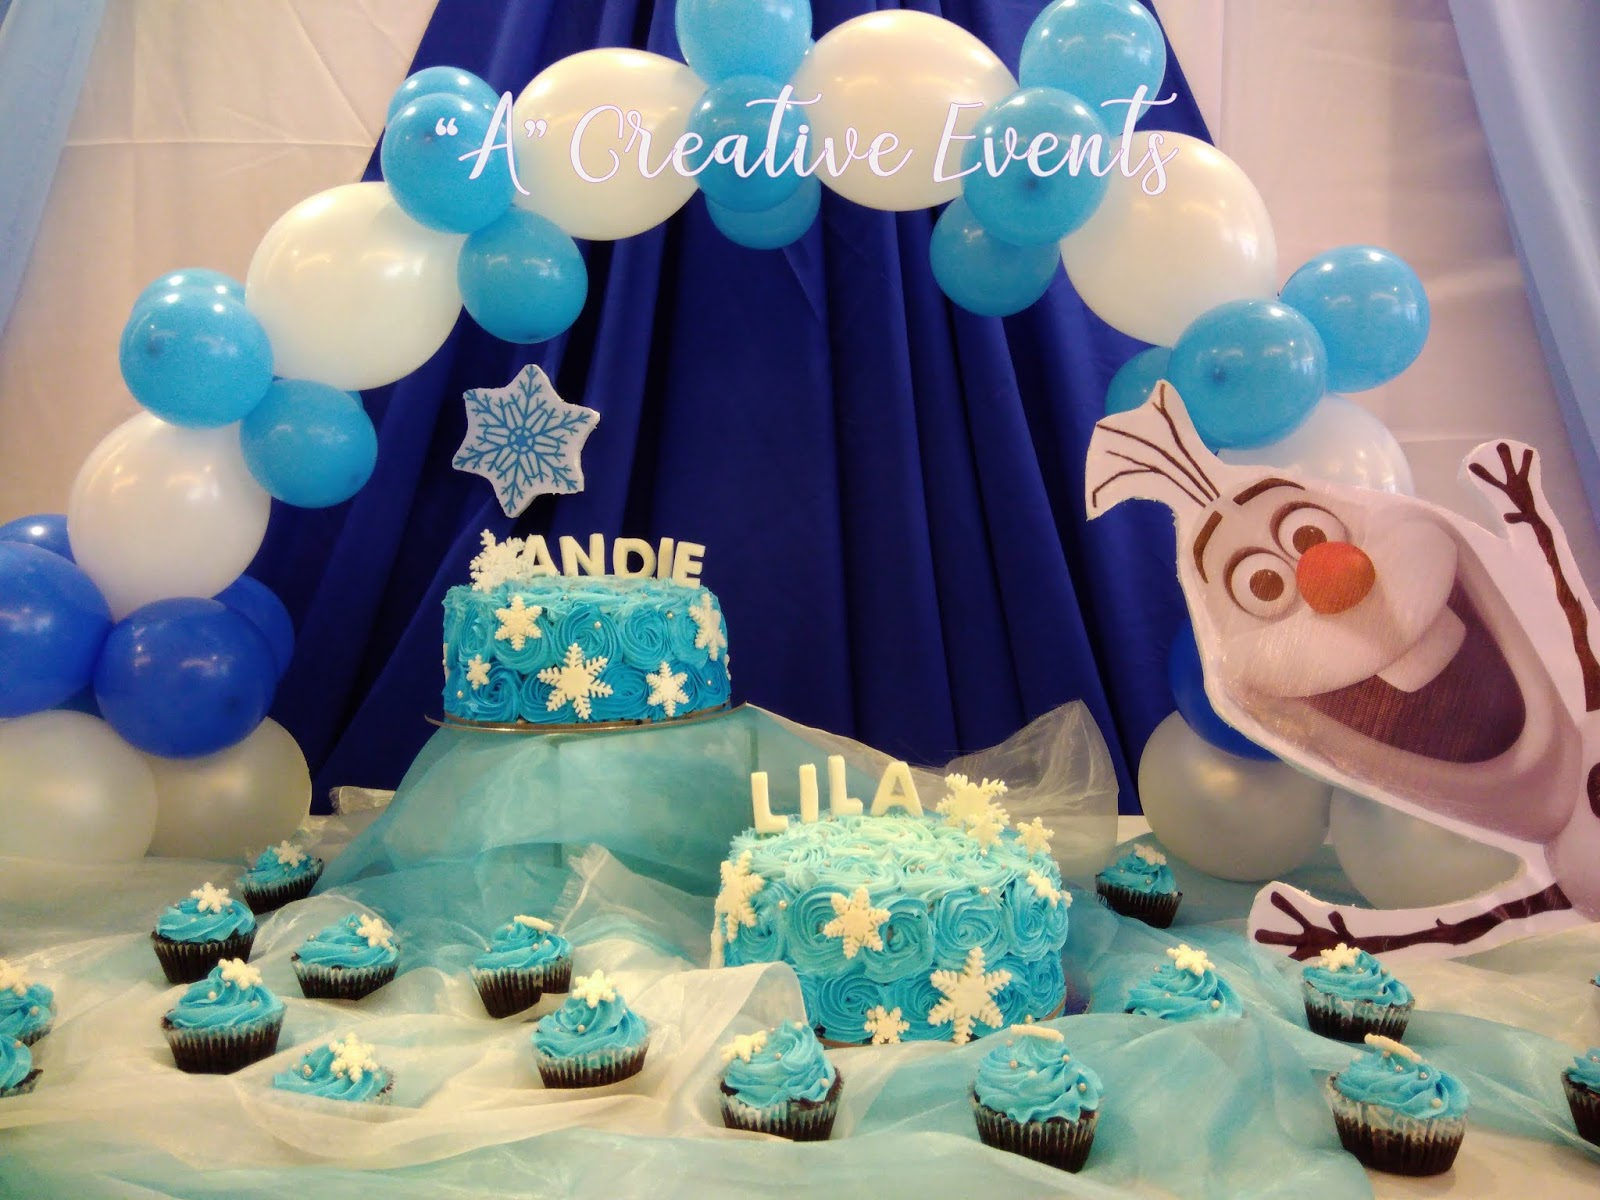 Andie and Lila's Frozen Themed Party Cakes and Cupcakes - Davao City